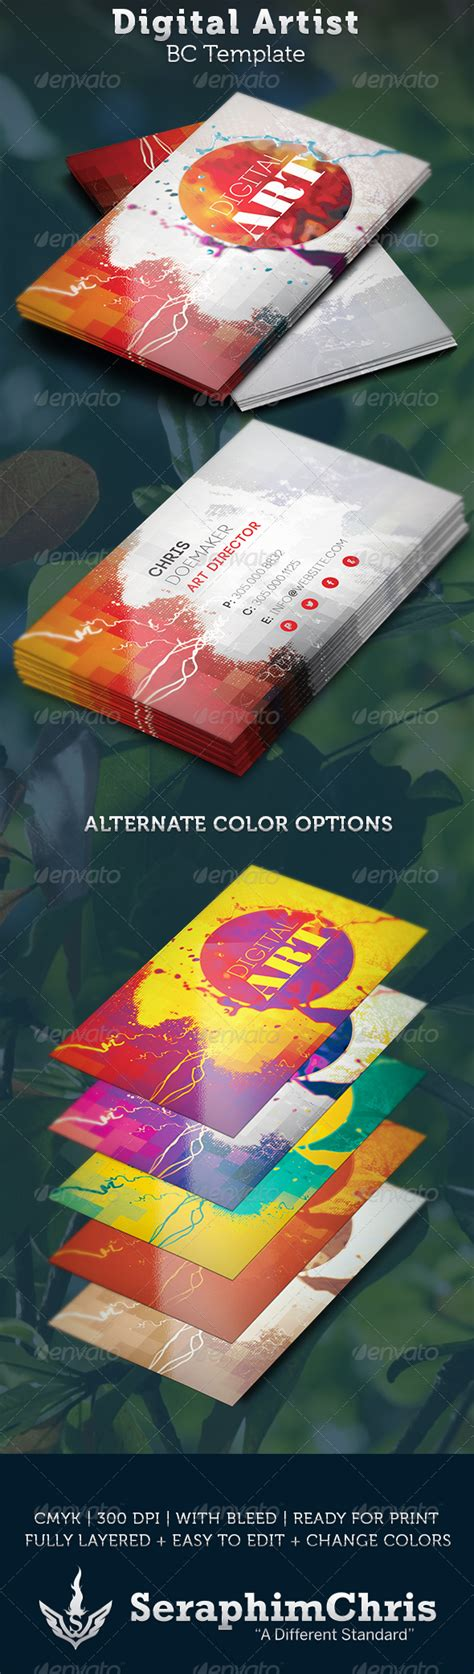 artist business cards templates digital artist business card template by seraphimchris